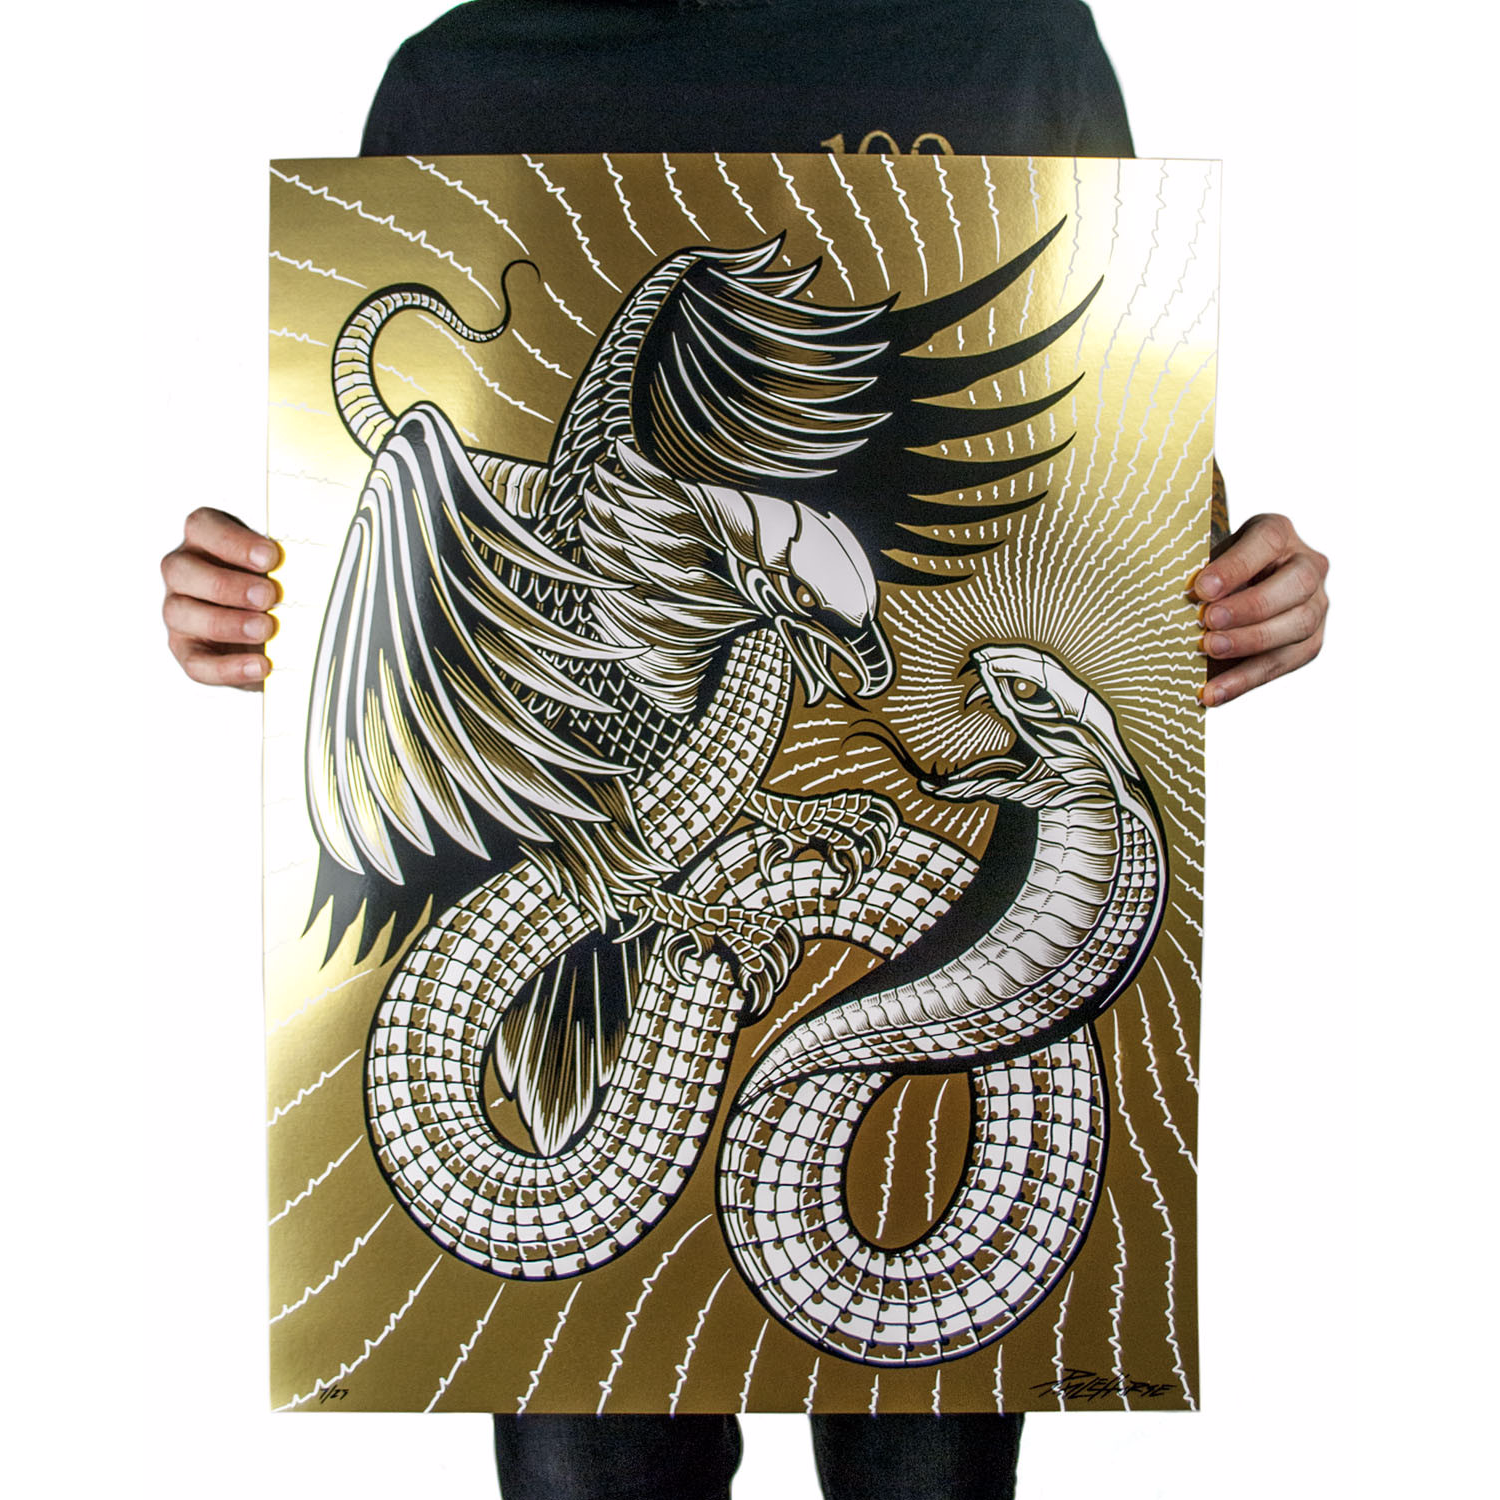 'Life Feeds On Life' - Gold Foil Variant